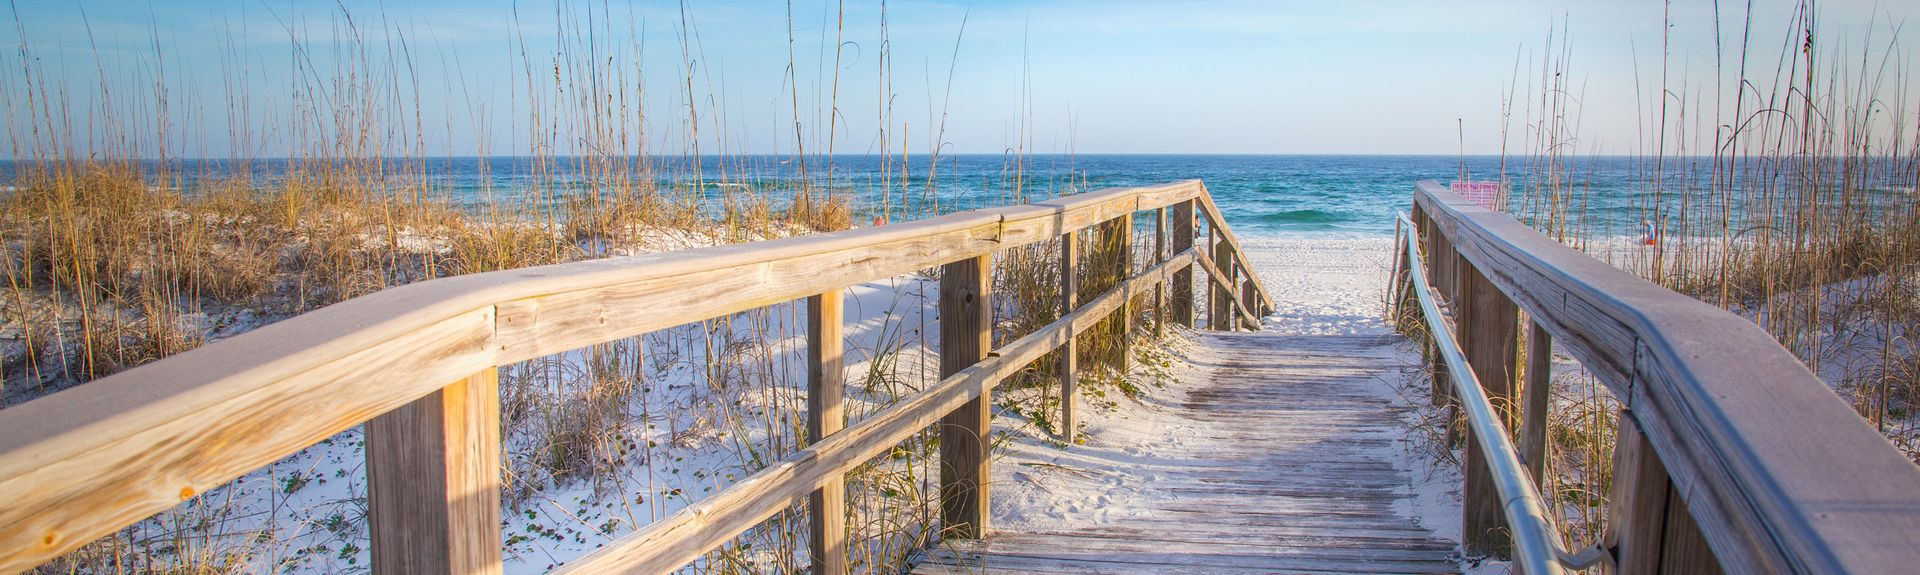 Pensacola Beach, FL, USA